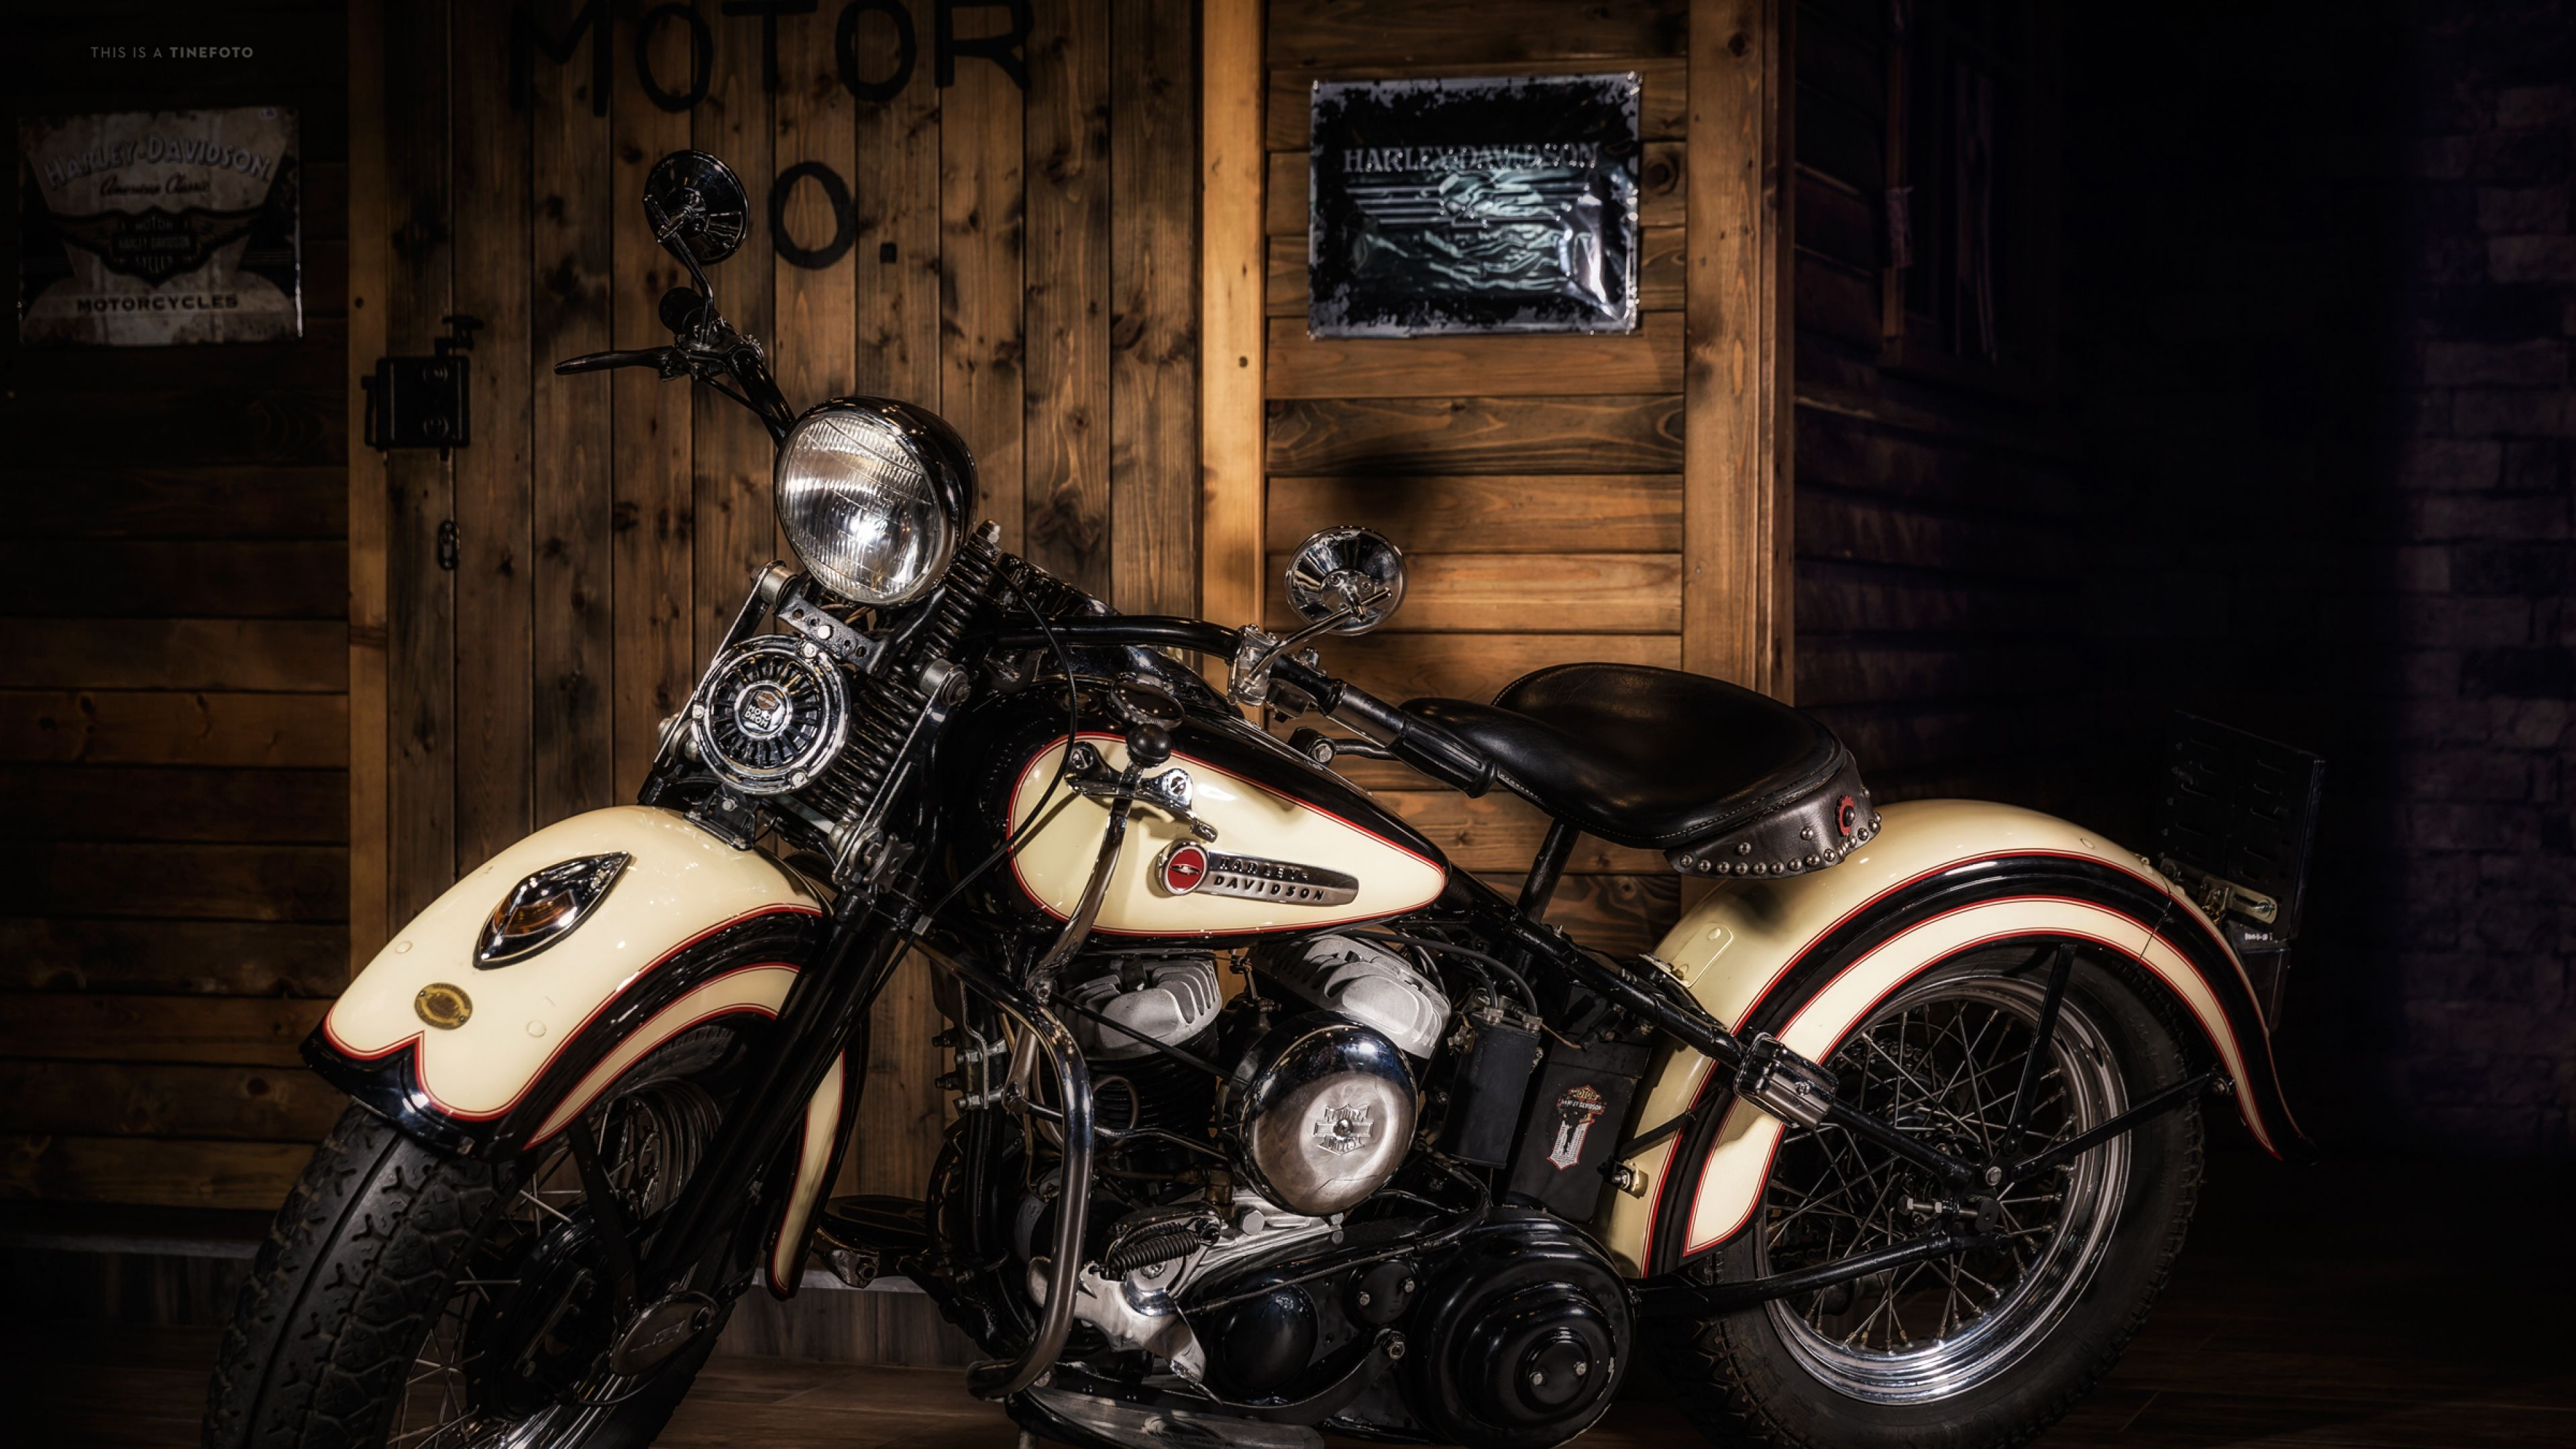 Download Wallpaper 3840x2160 Harley davidson, Motorcycle